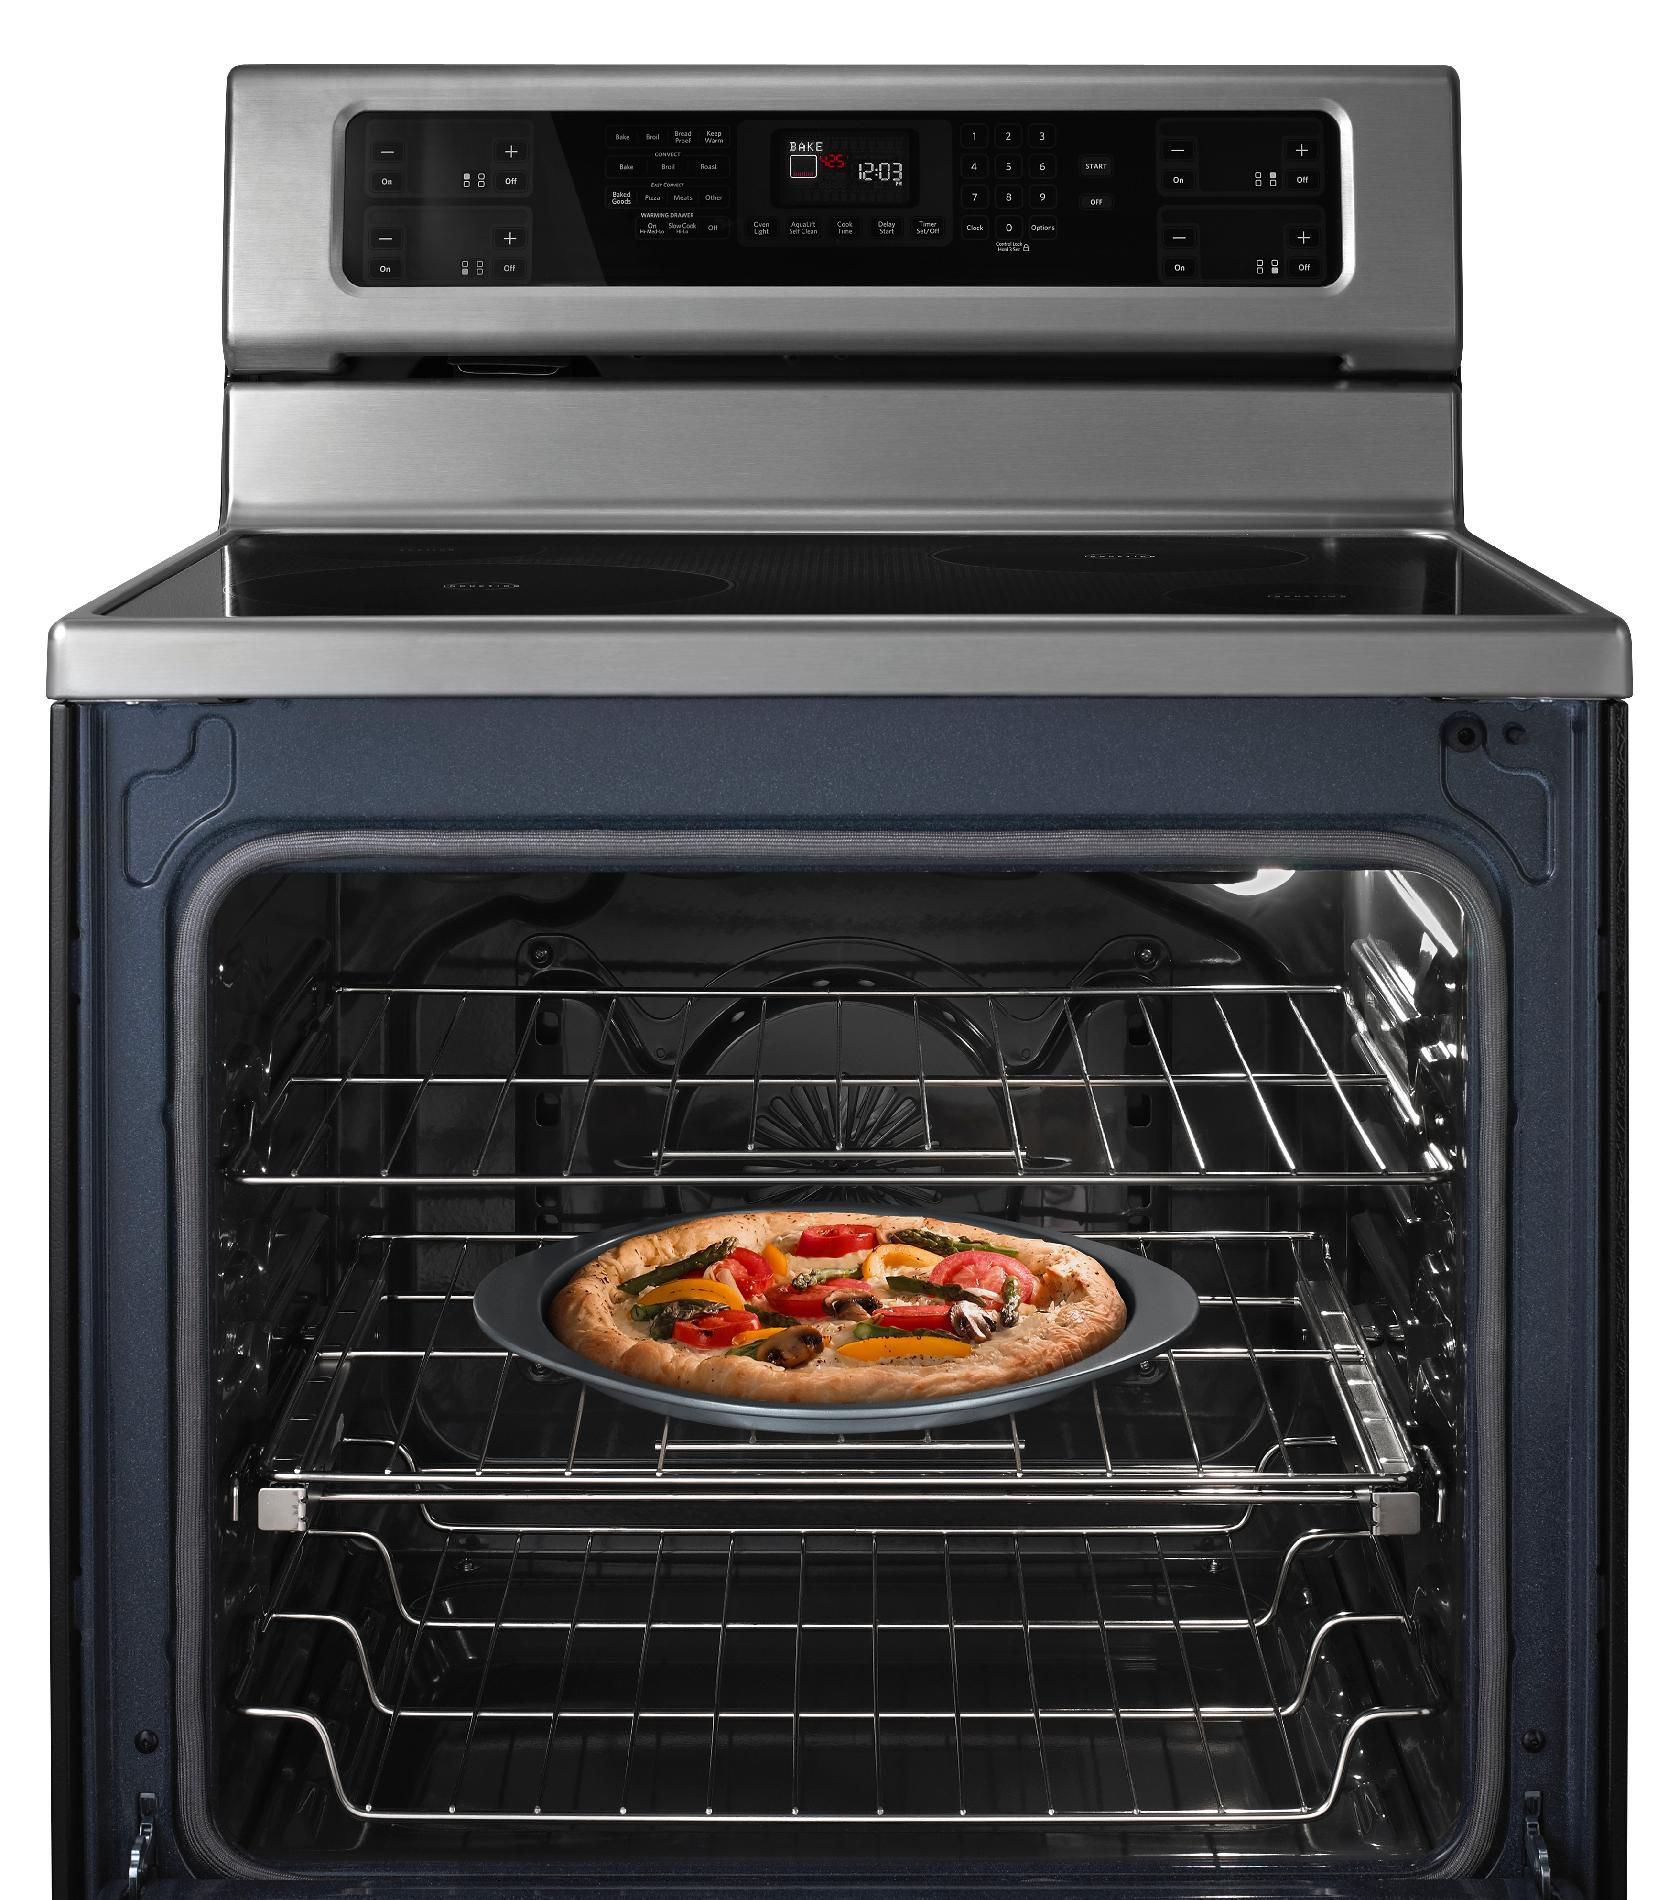 KitchenAid 6.2 cu. ft. Electric Range w/ Even-Heat™ Technology, Warming Drawer - Stainless Steel